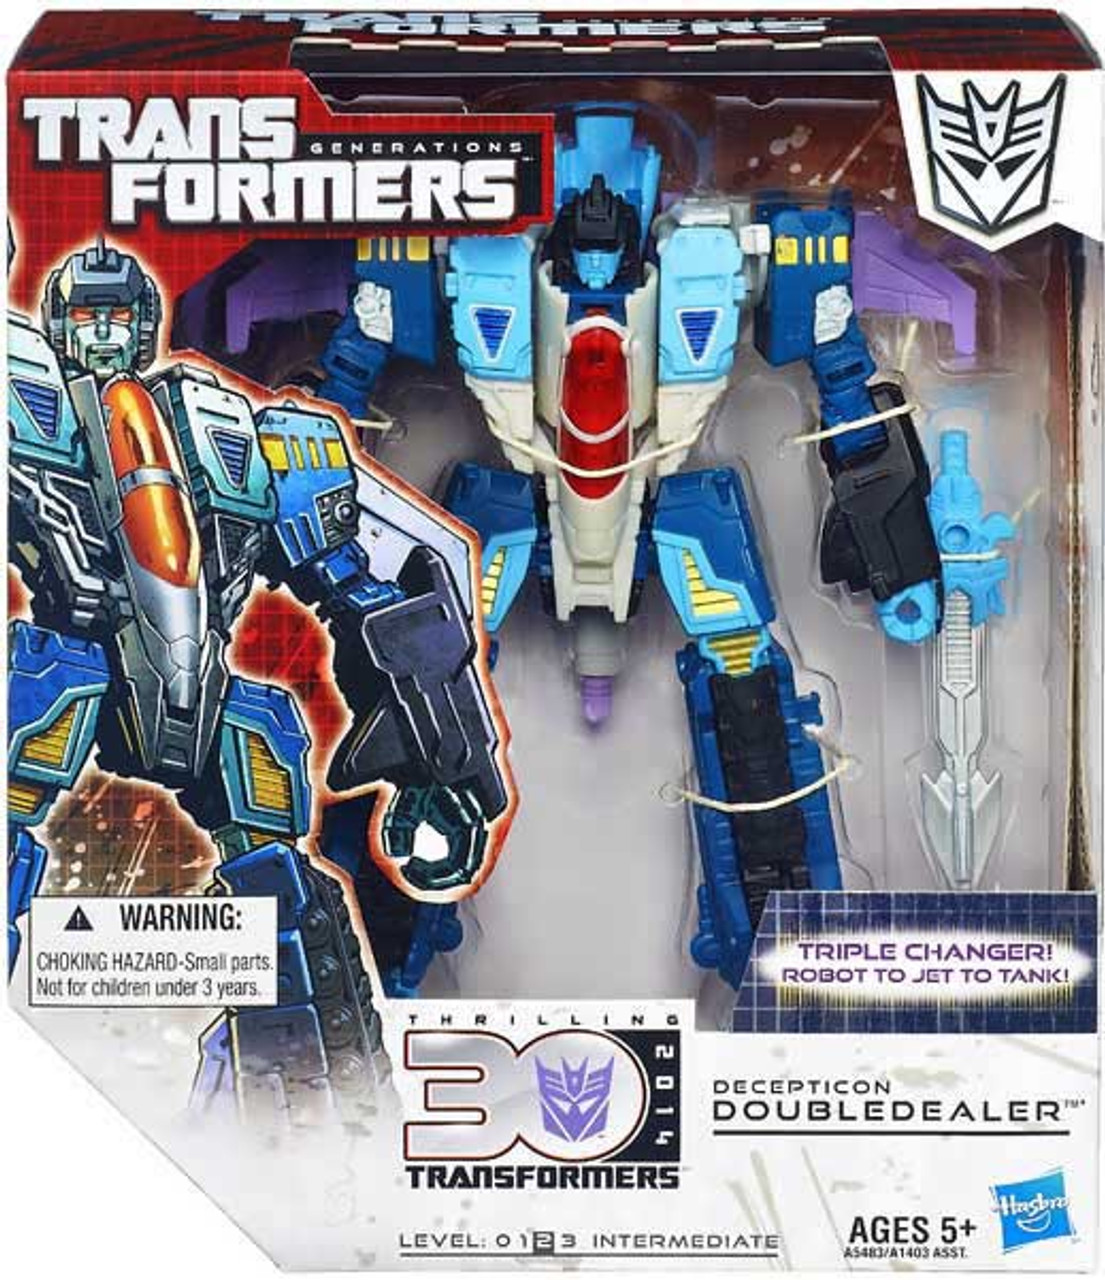 Transformers Generations 30th Anniversary Doubledealer Voyager Action Figure